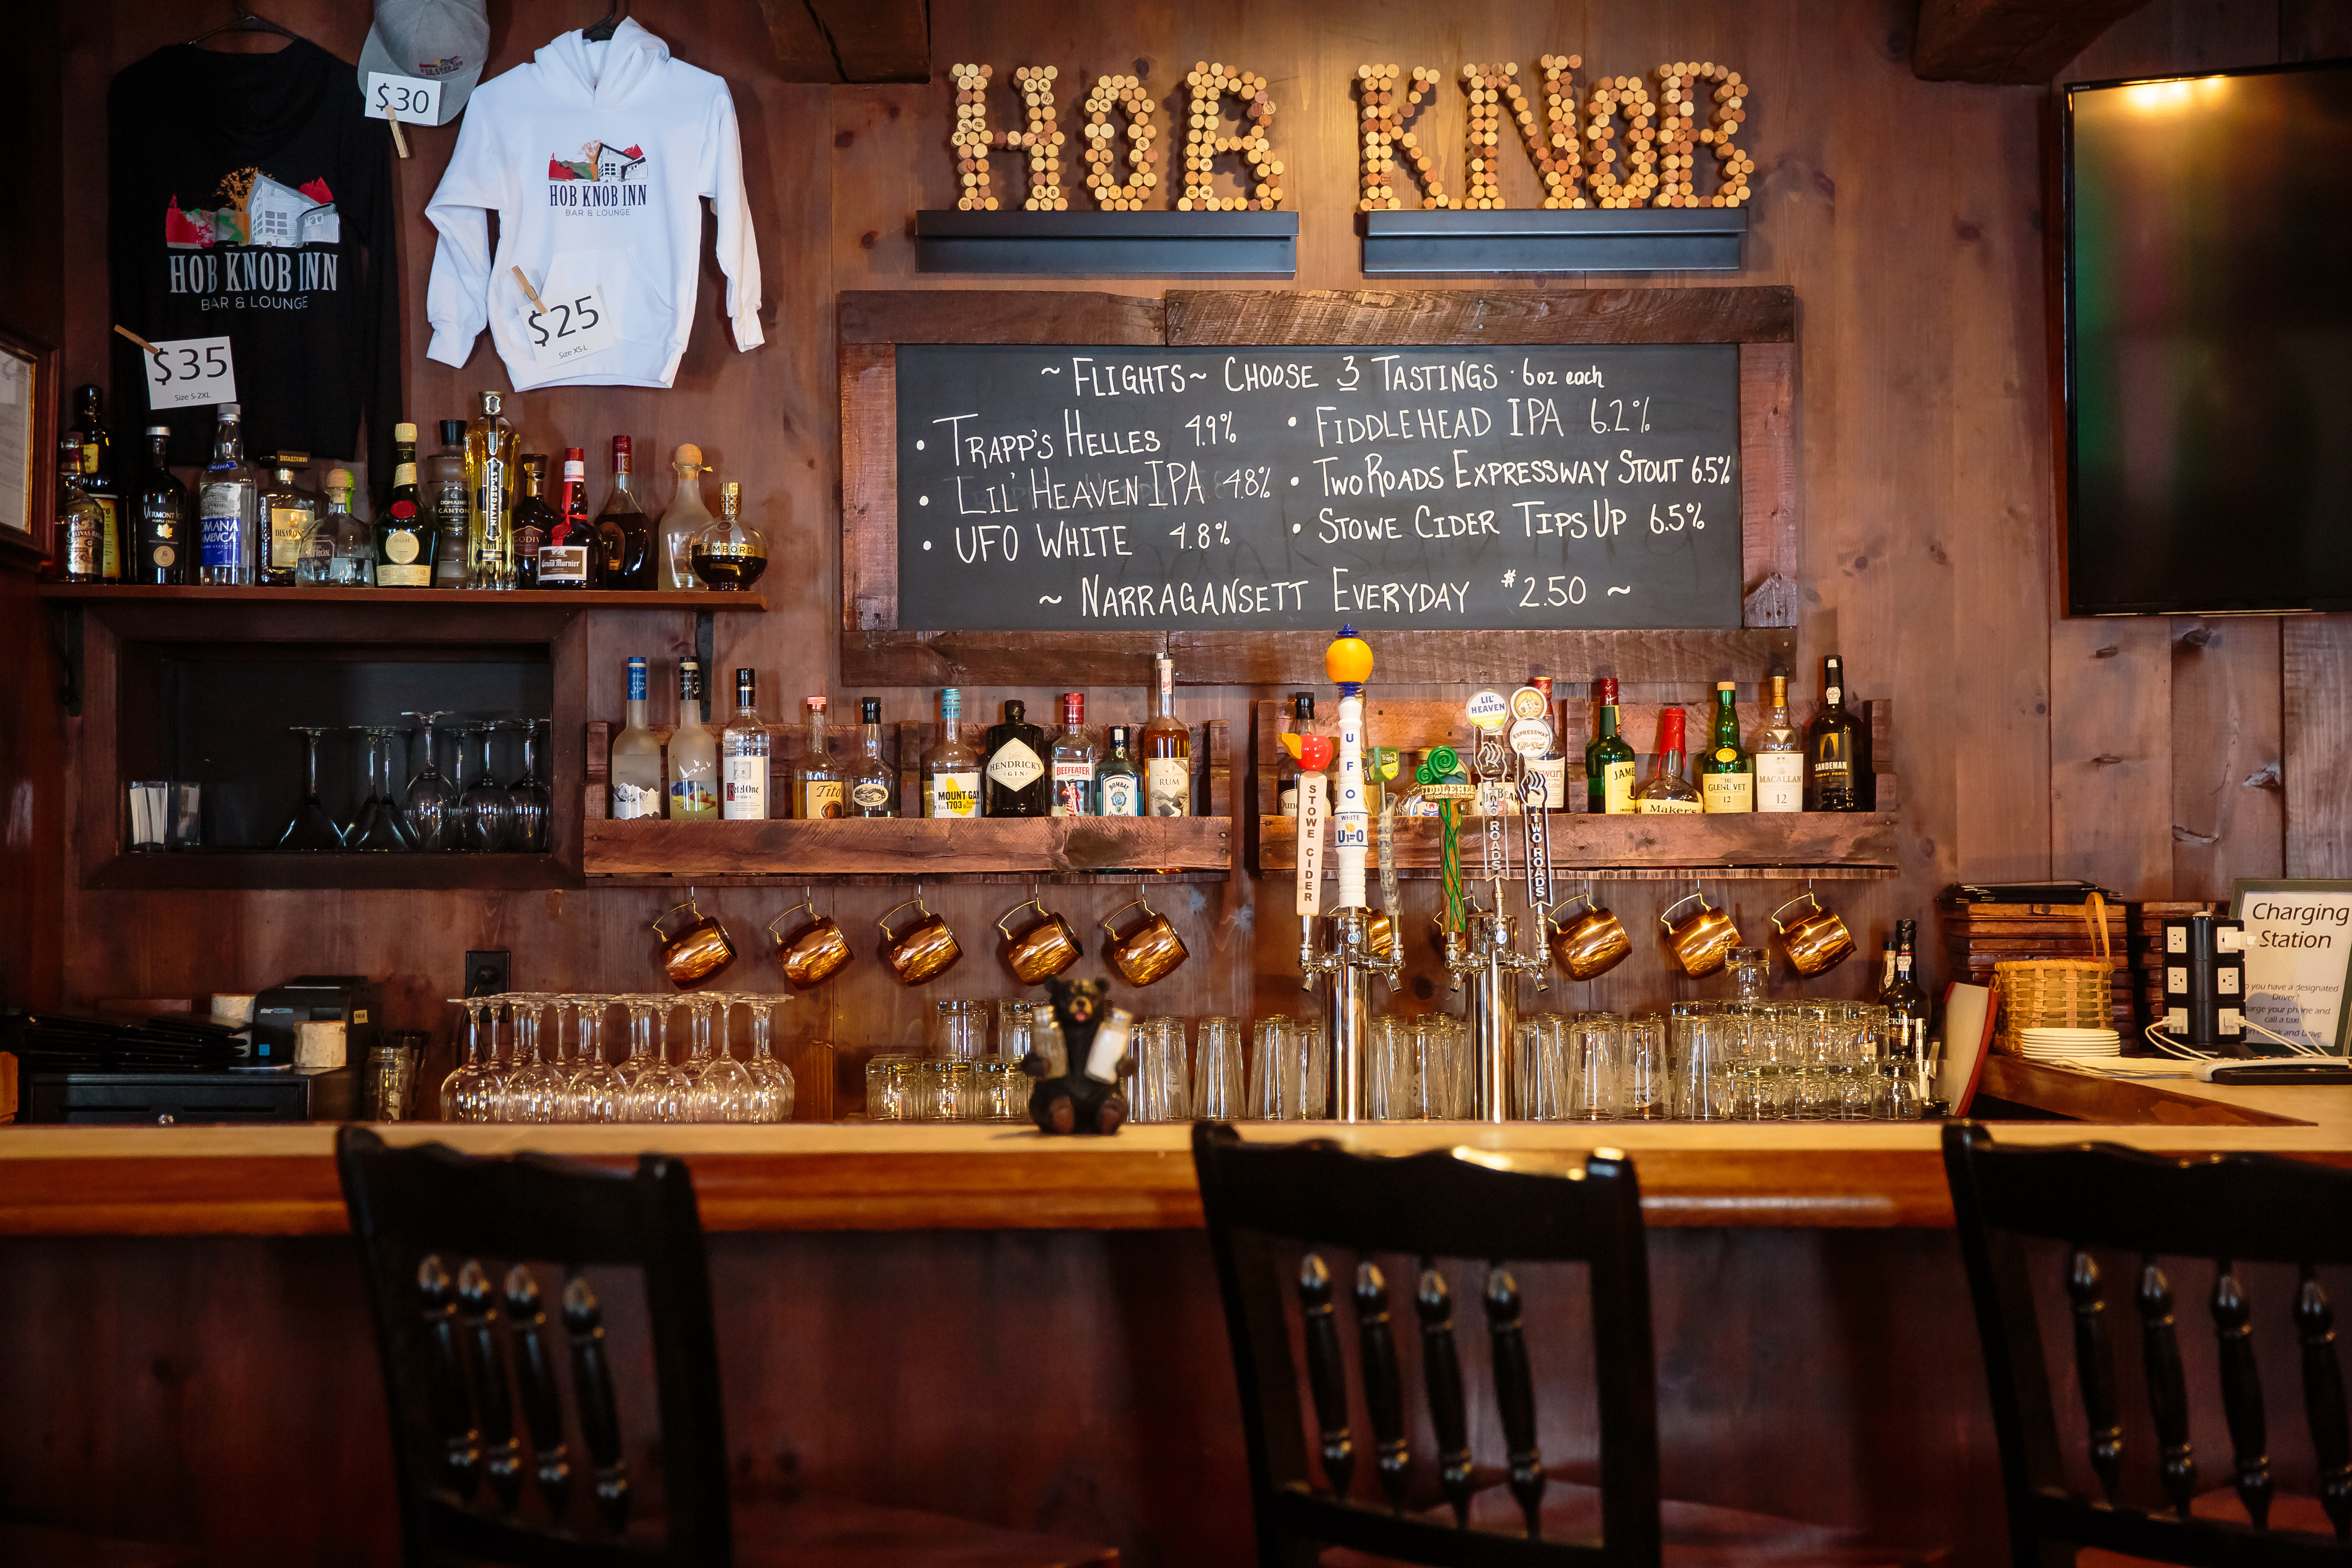 Hob Inn S Bar Lounge Is Open From 5pm 9pm Thursday Friday And Saay Offering A Private Cozy E For The Whole Family To Enjoy